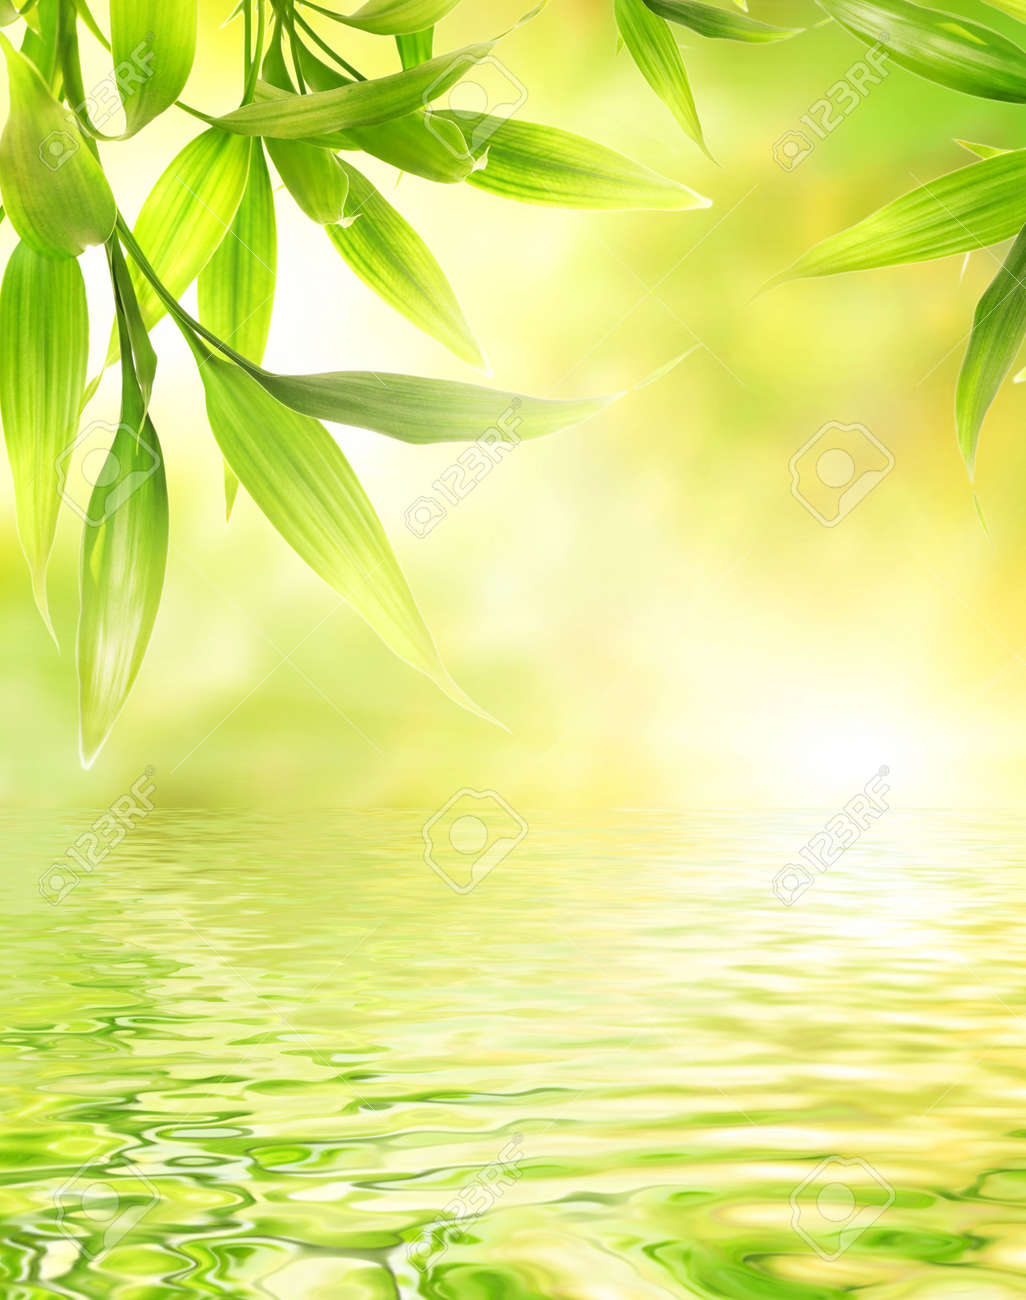 Bamboo leaves reflected in rendered water Stock Photo - 3243927